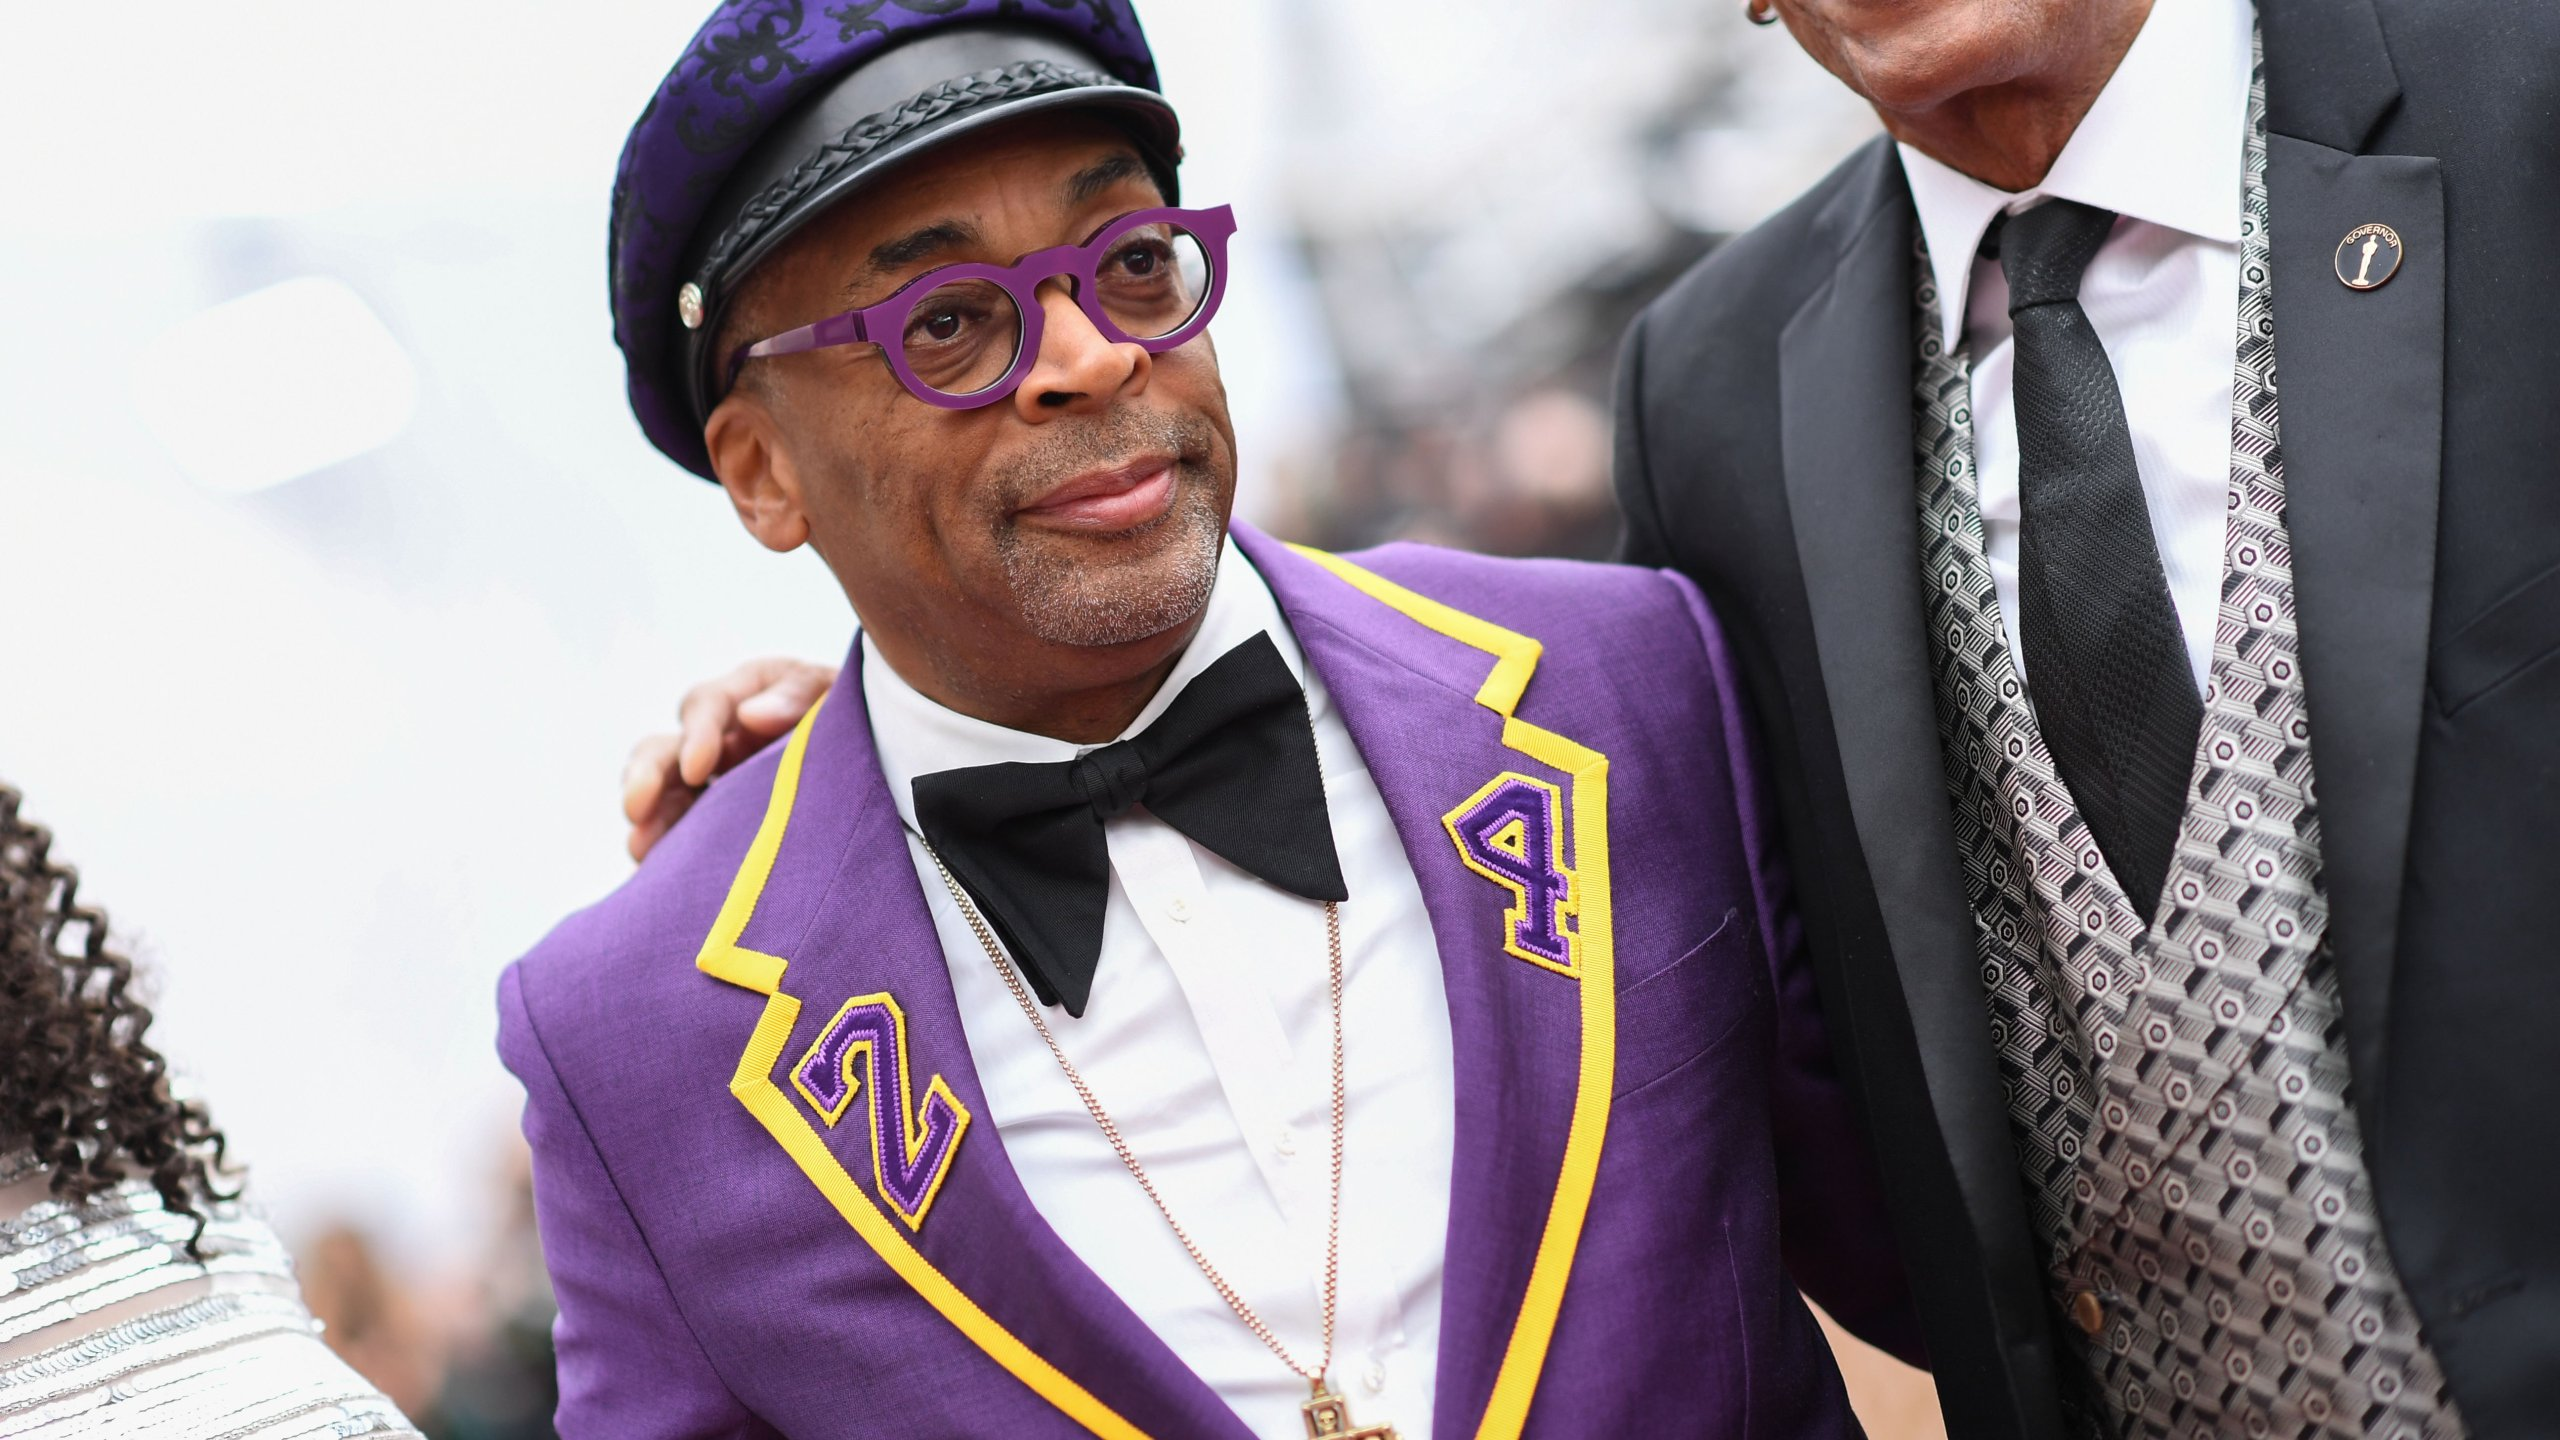 Director Spike Lee arrives at the 92nd Oscars at the Dolby Theatre in Hollywood on Feb. 9, 2020. (Credit: VALERIE MACON/AFP via Getty Images)